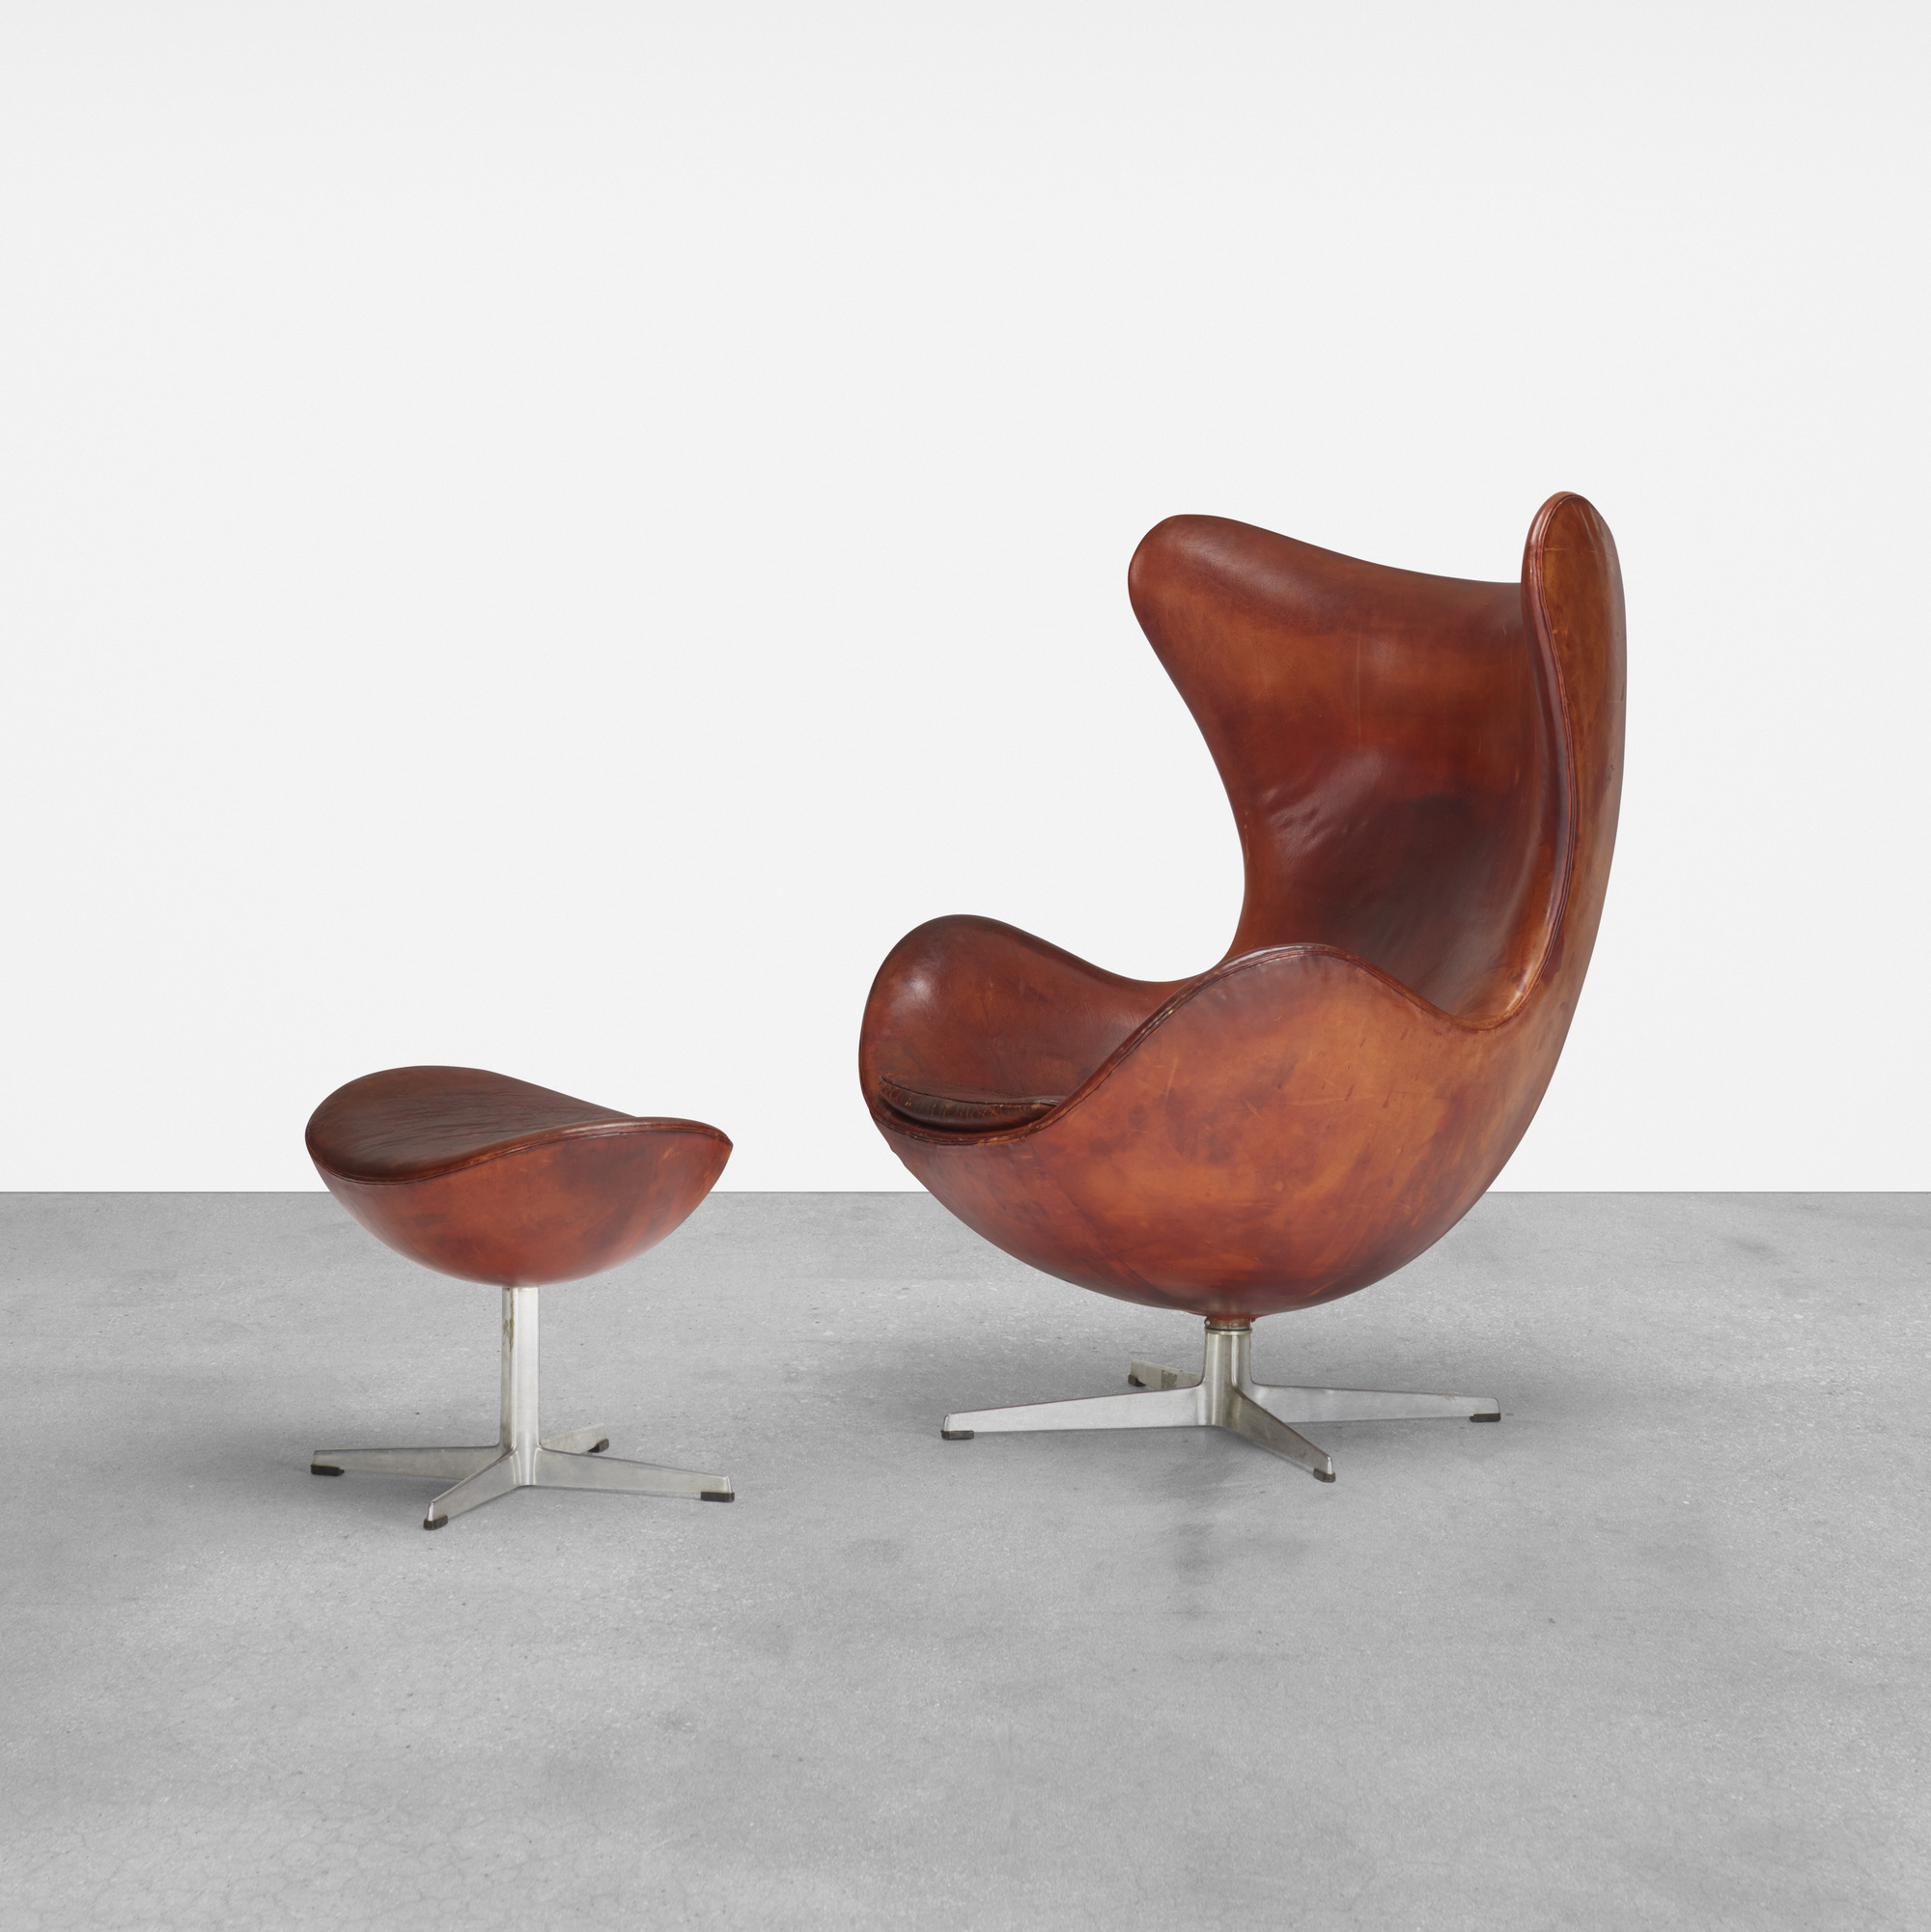 379: Arne Jacobsen / Egg Chair And Ottoman (1 Of 3)